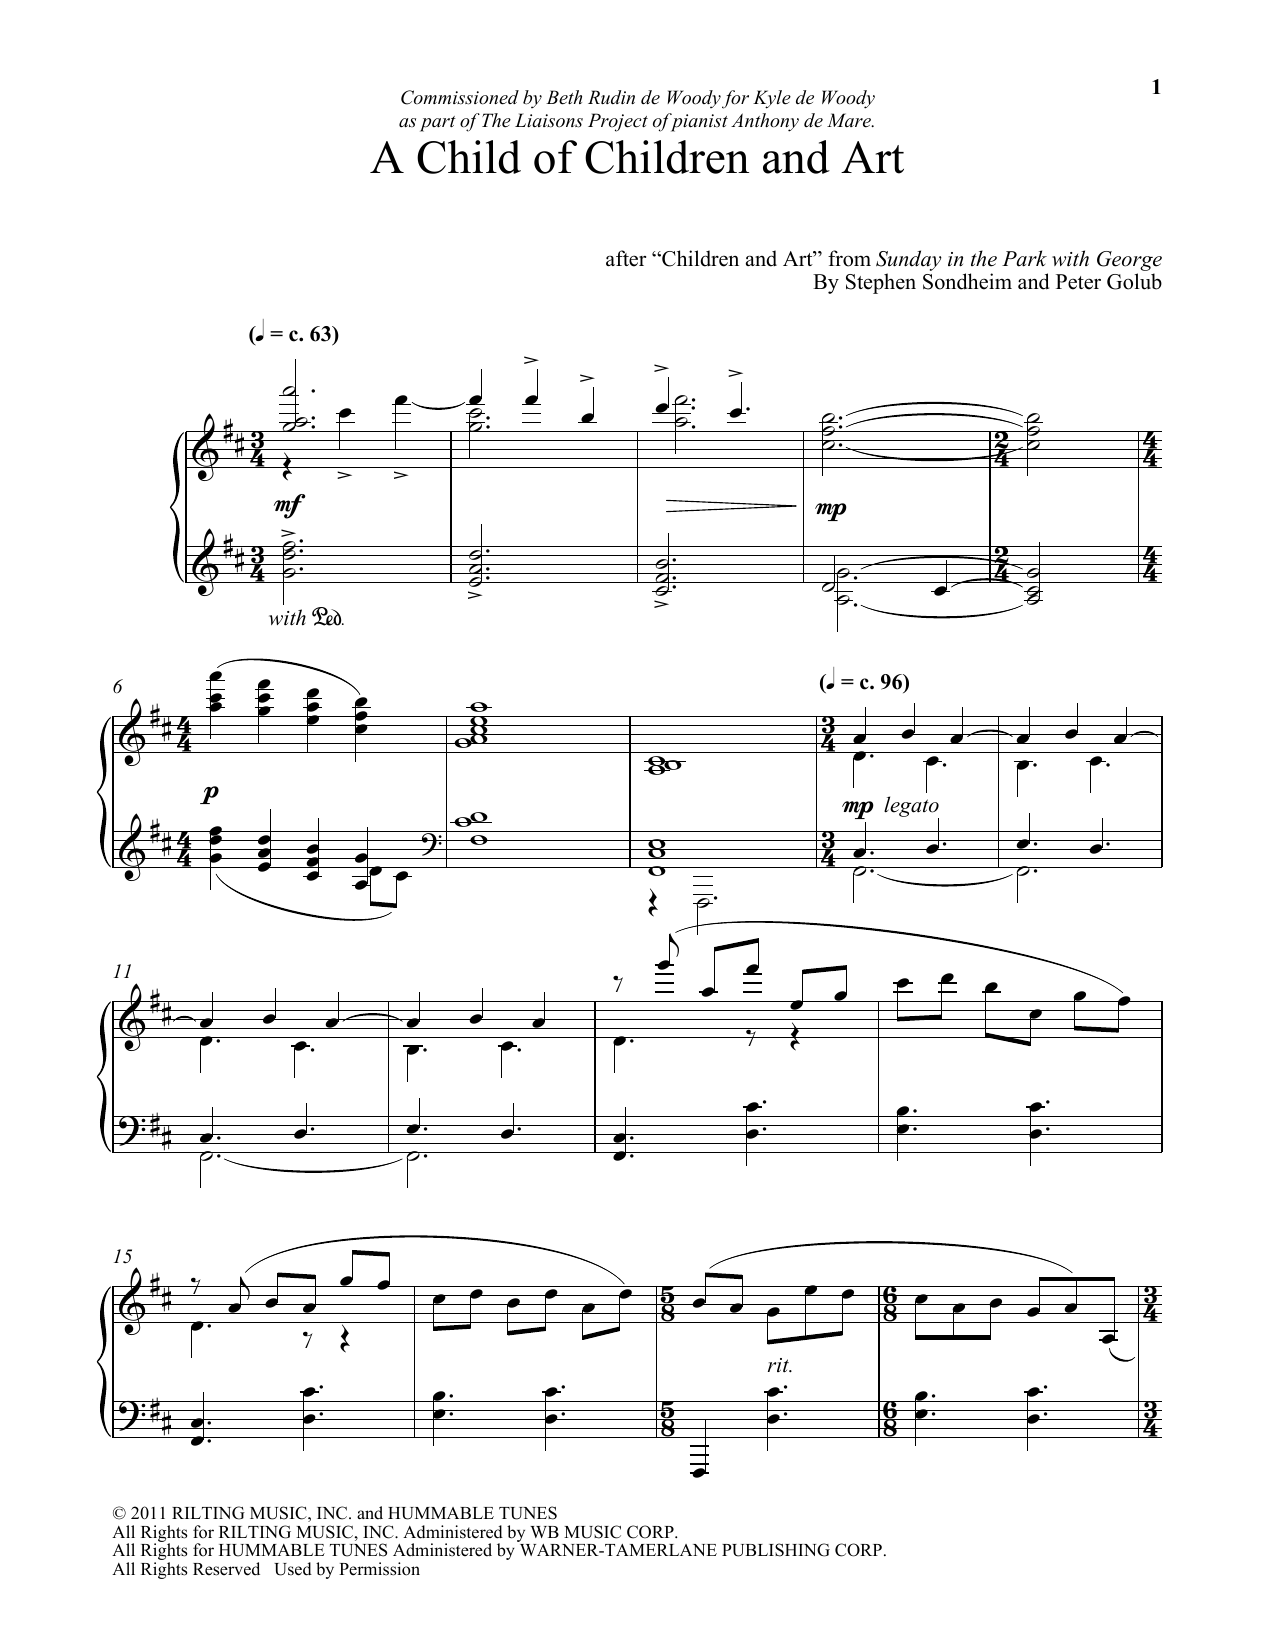 Stephen Sondheim A Child Of Children And Art (arr. Peter Golub) sheet music notes and chords. Download Printable PDF.